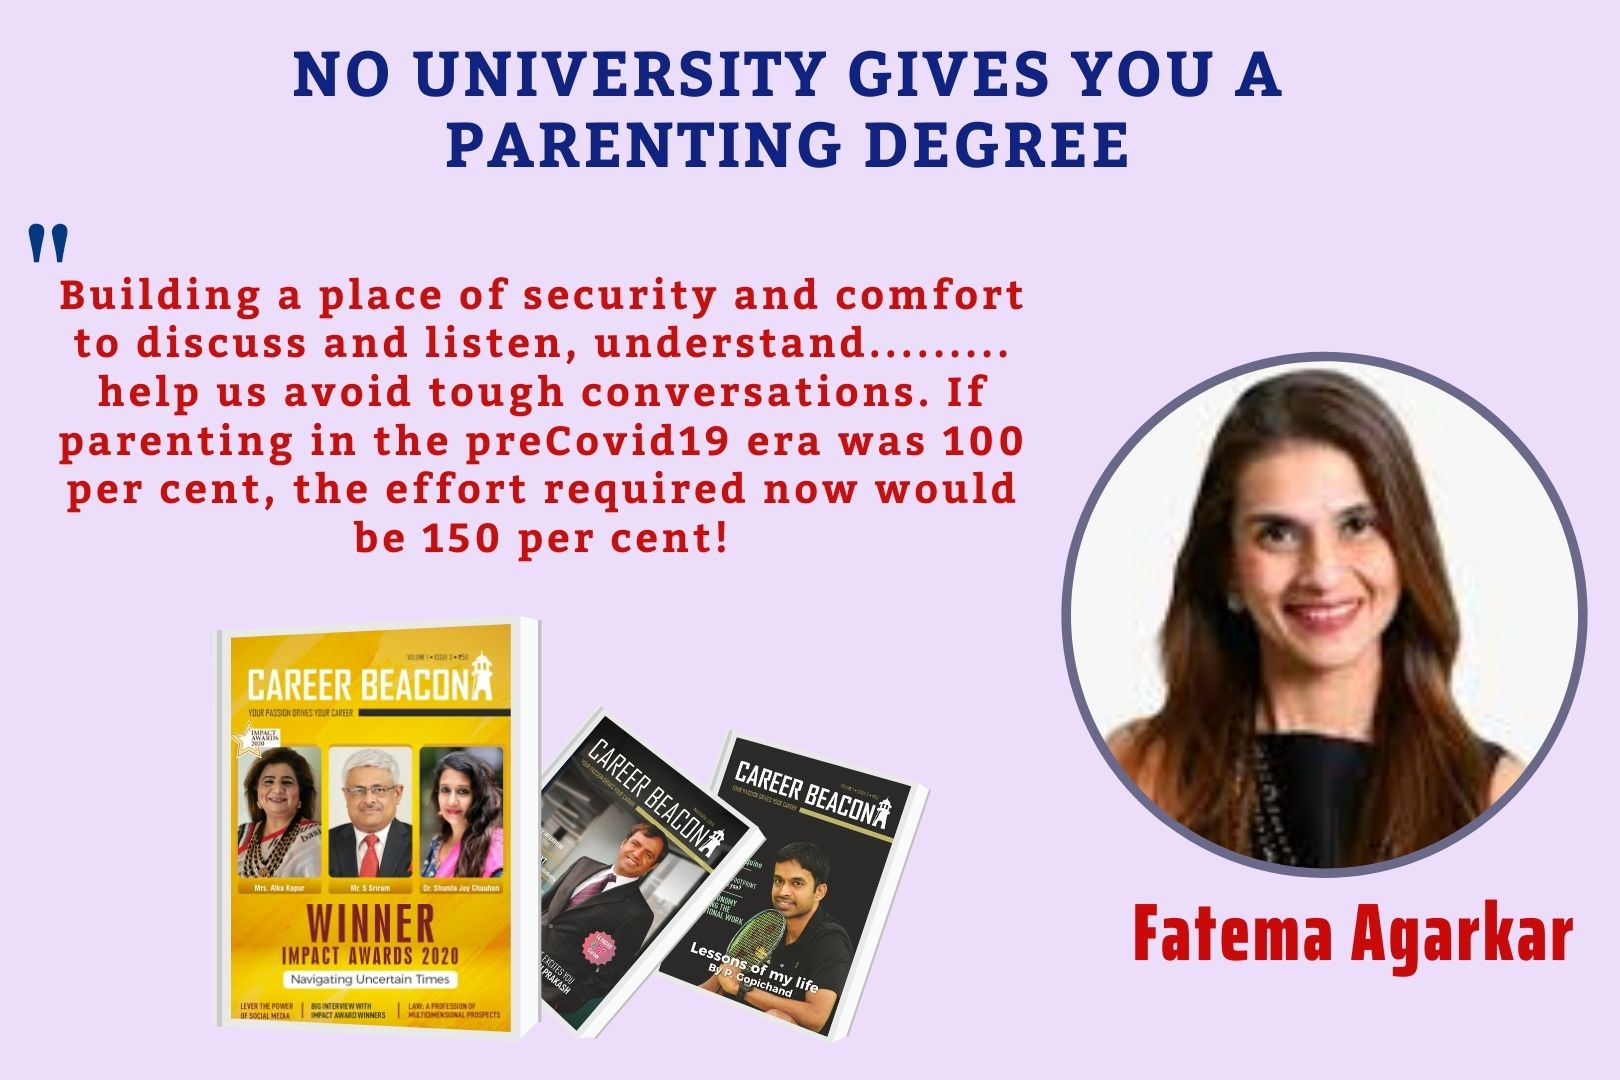 NO UNIVERSITY GIVES YOU A PARENTING DEGREE